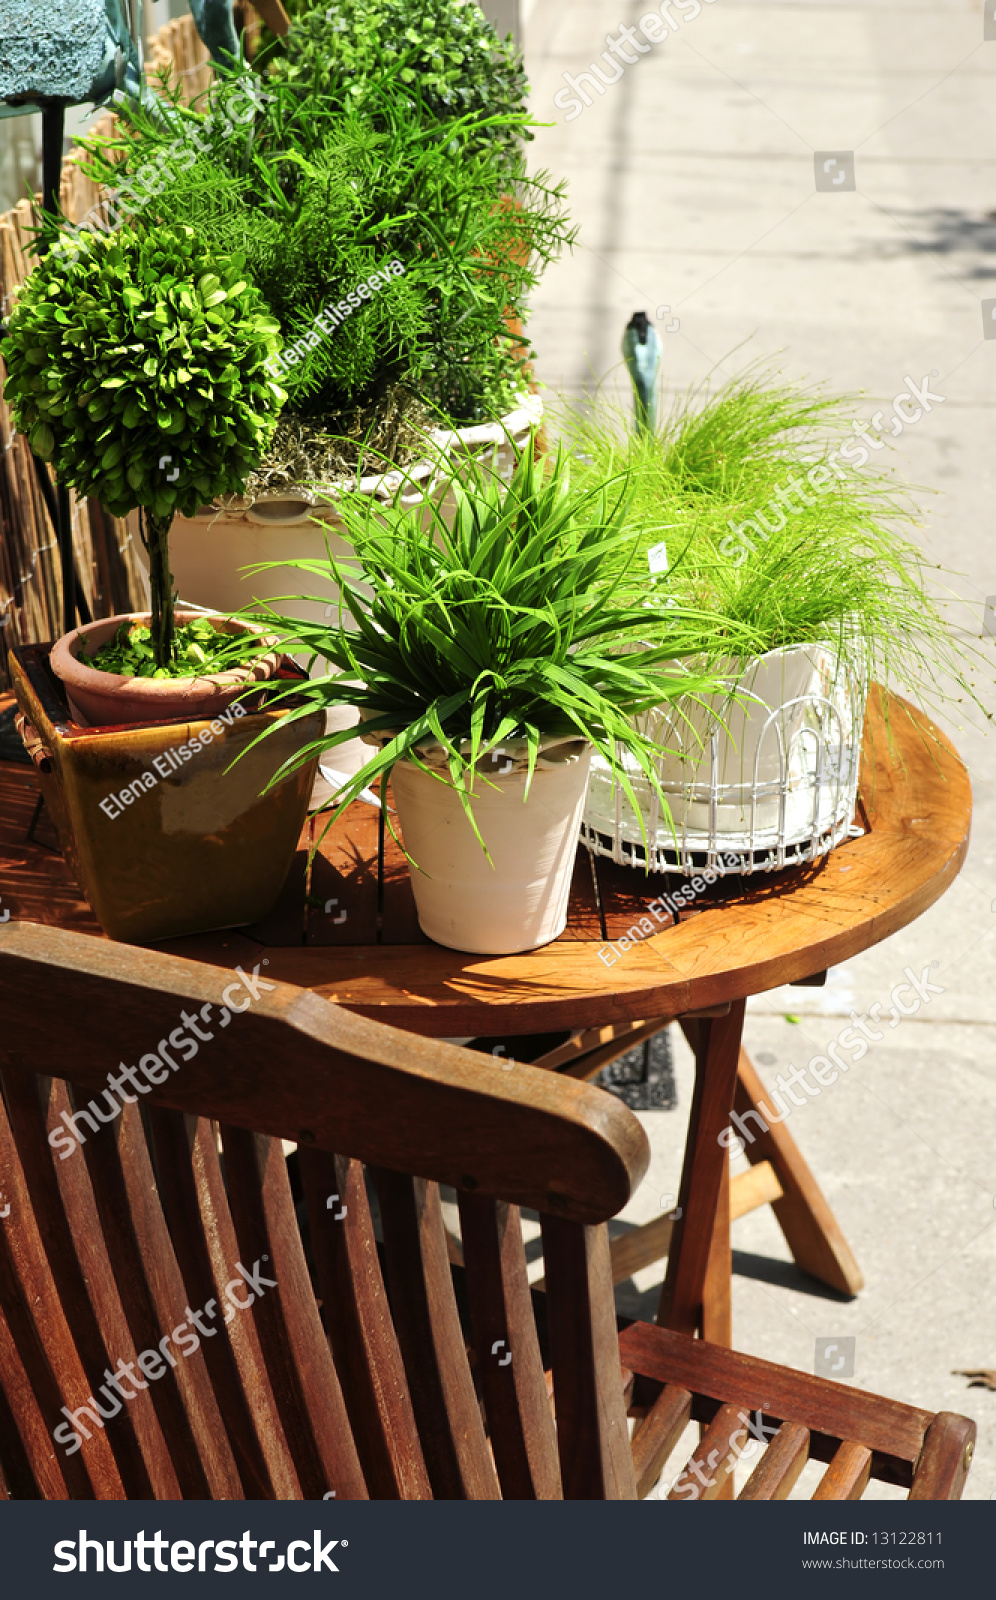 Potted Green Plants On Wooden Patio Stock Photo 13122811